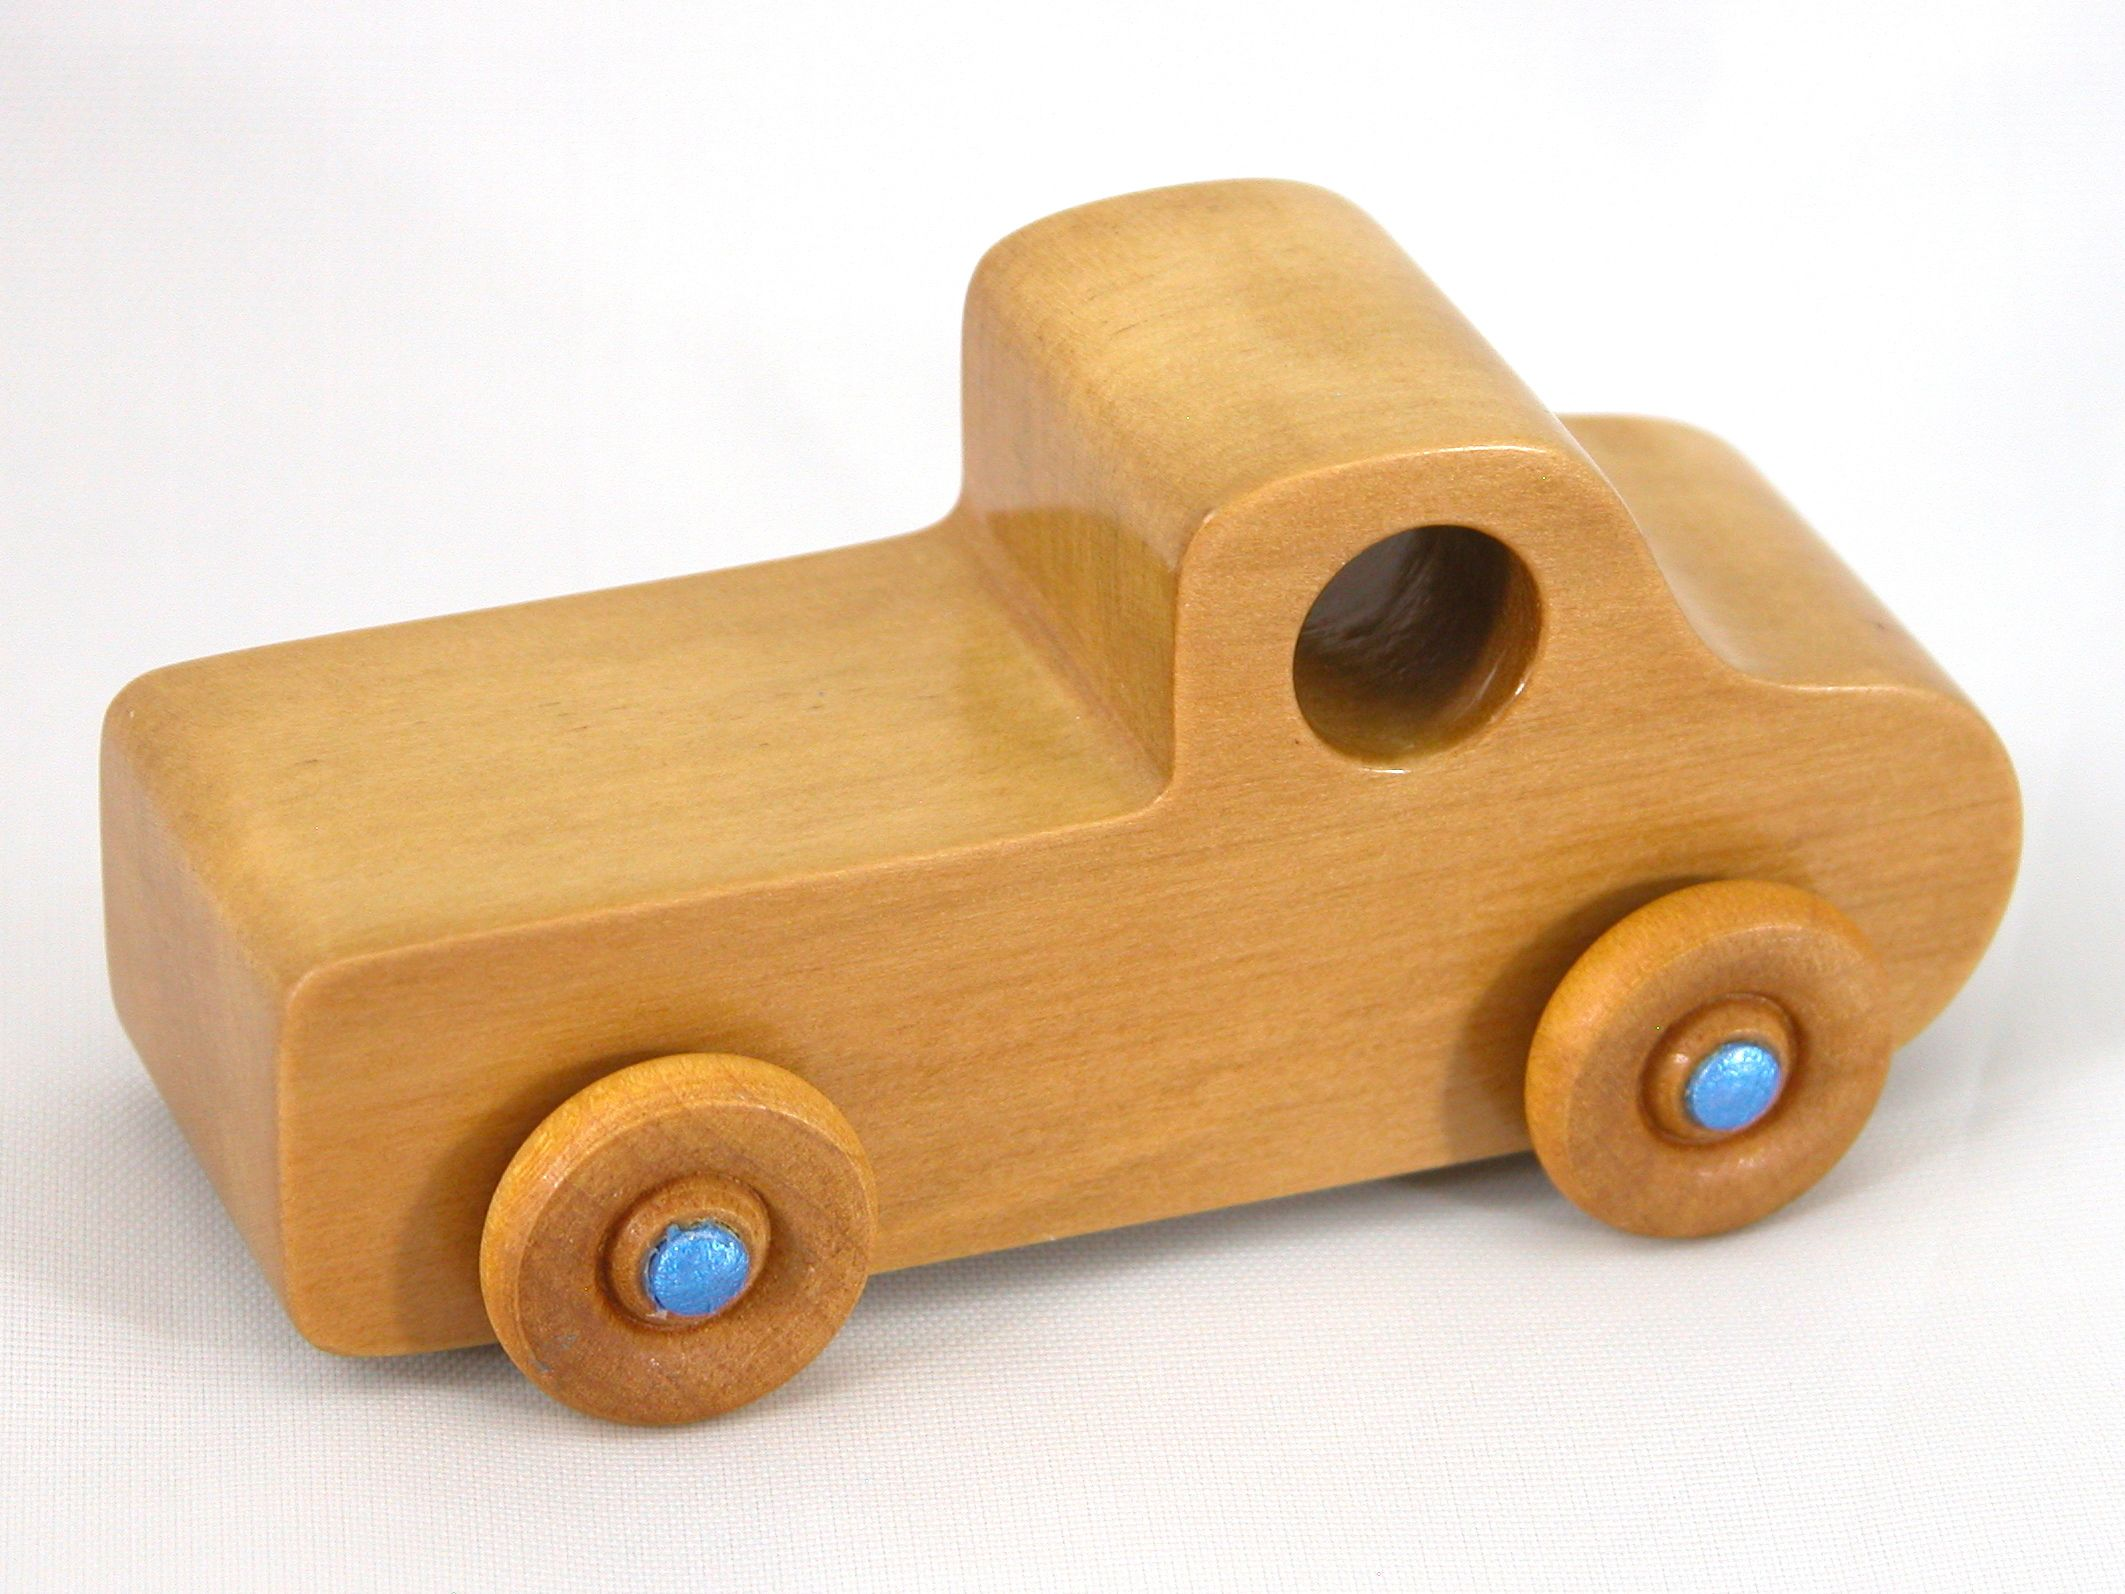 Wooden Toy Pickup Truck From The Play Pal Series Wood Toys Etc